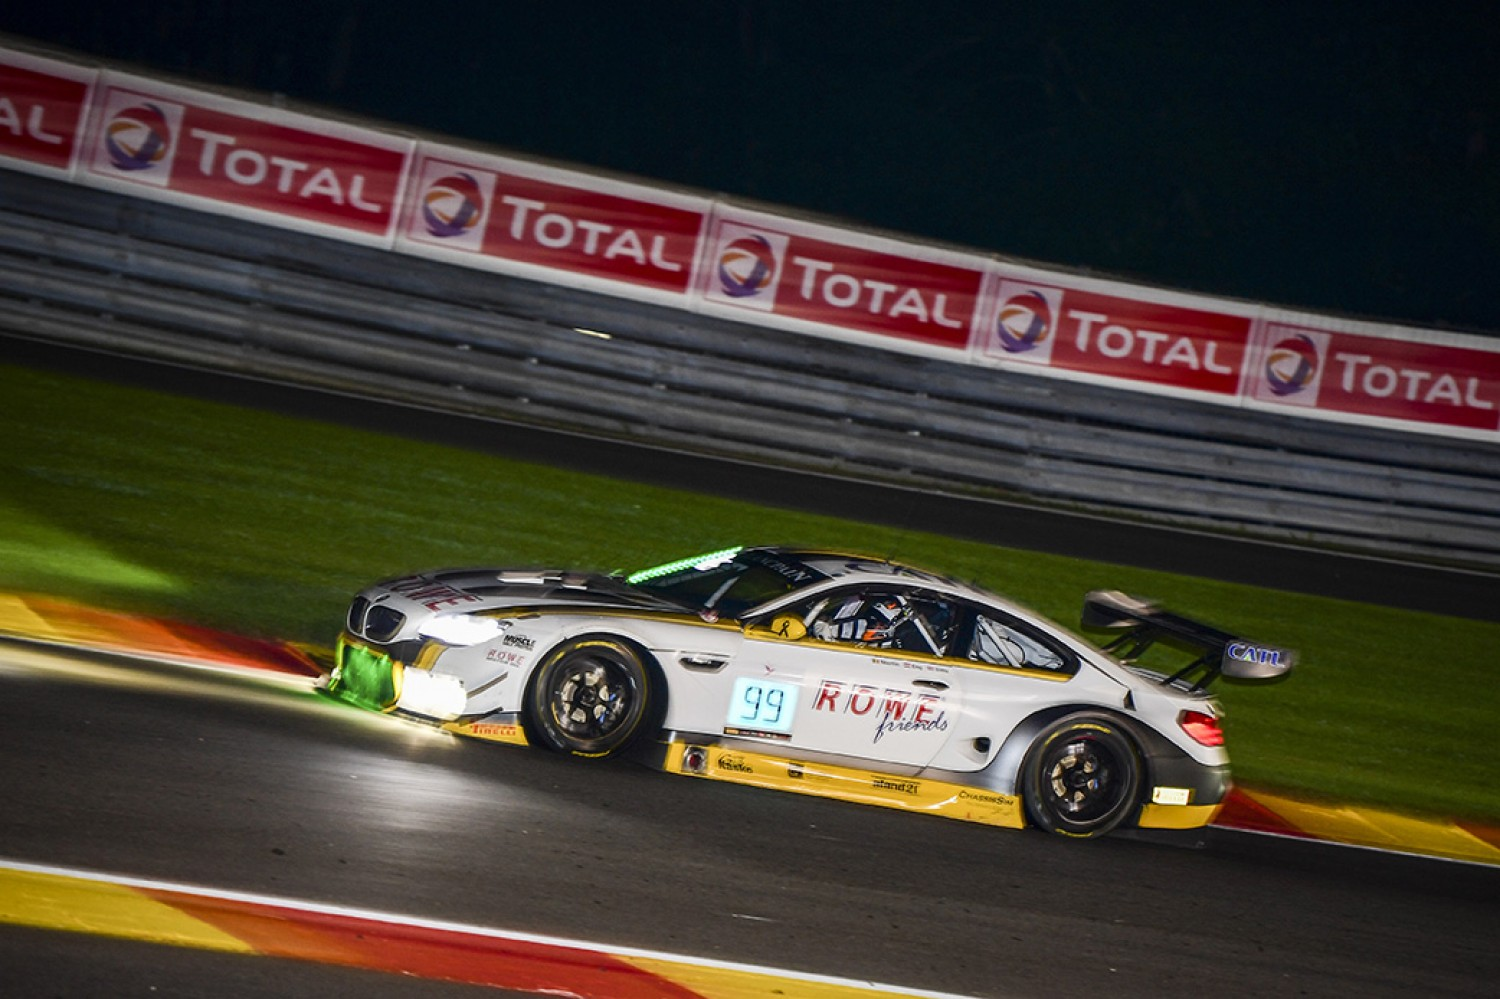 #99 Rowe Racing BMW takes full points at the six-hour mark